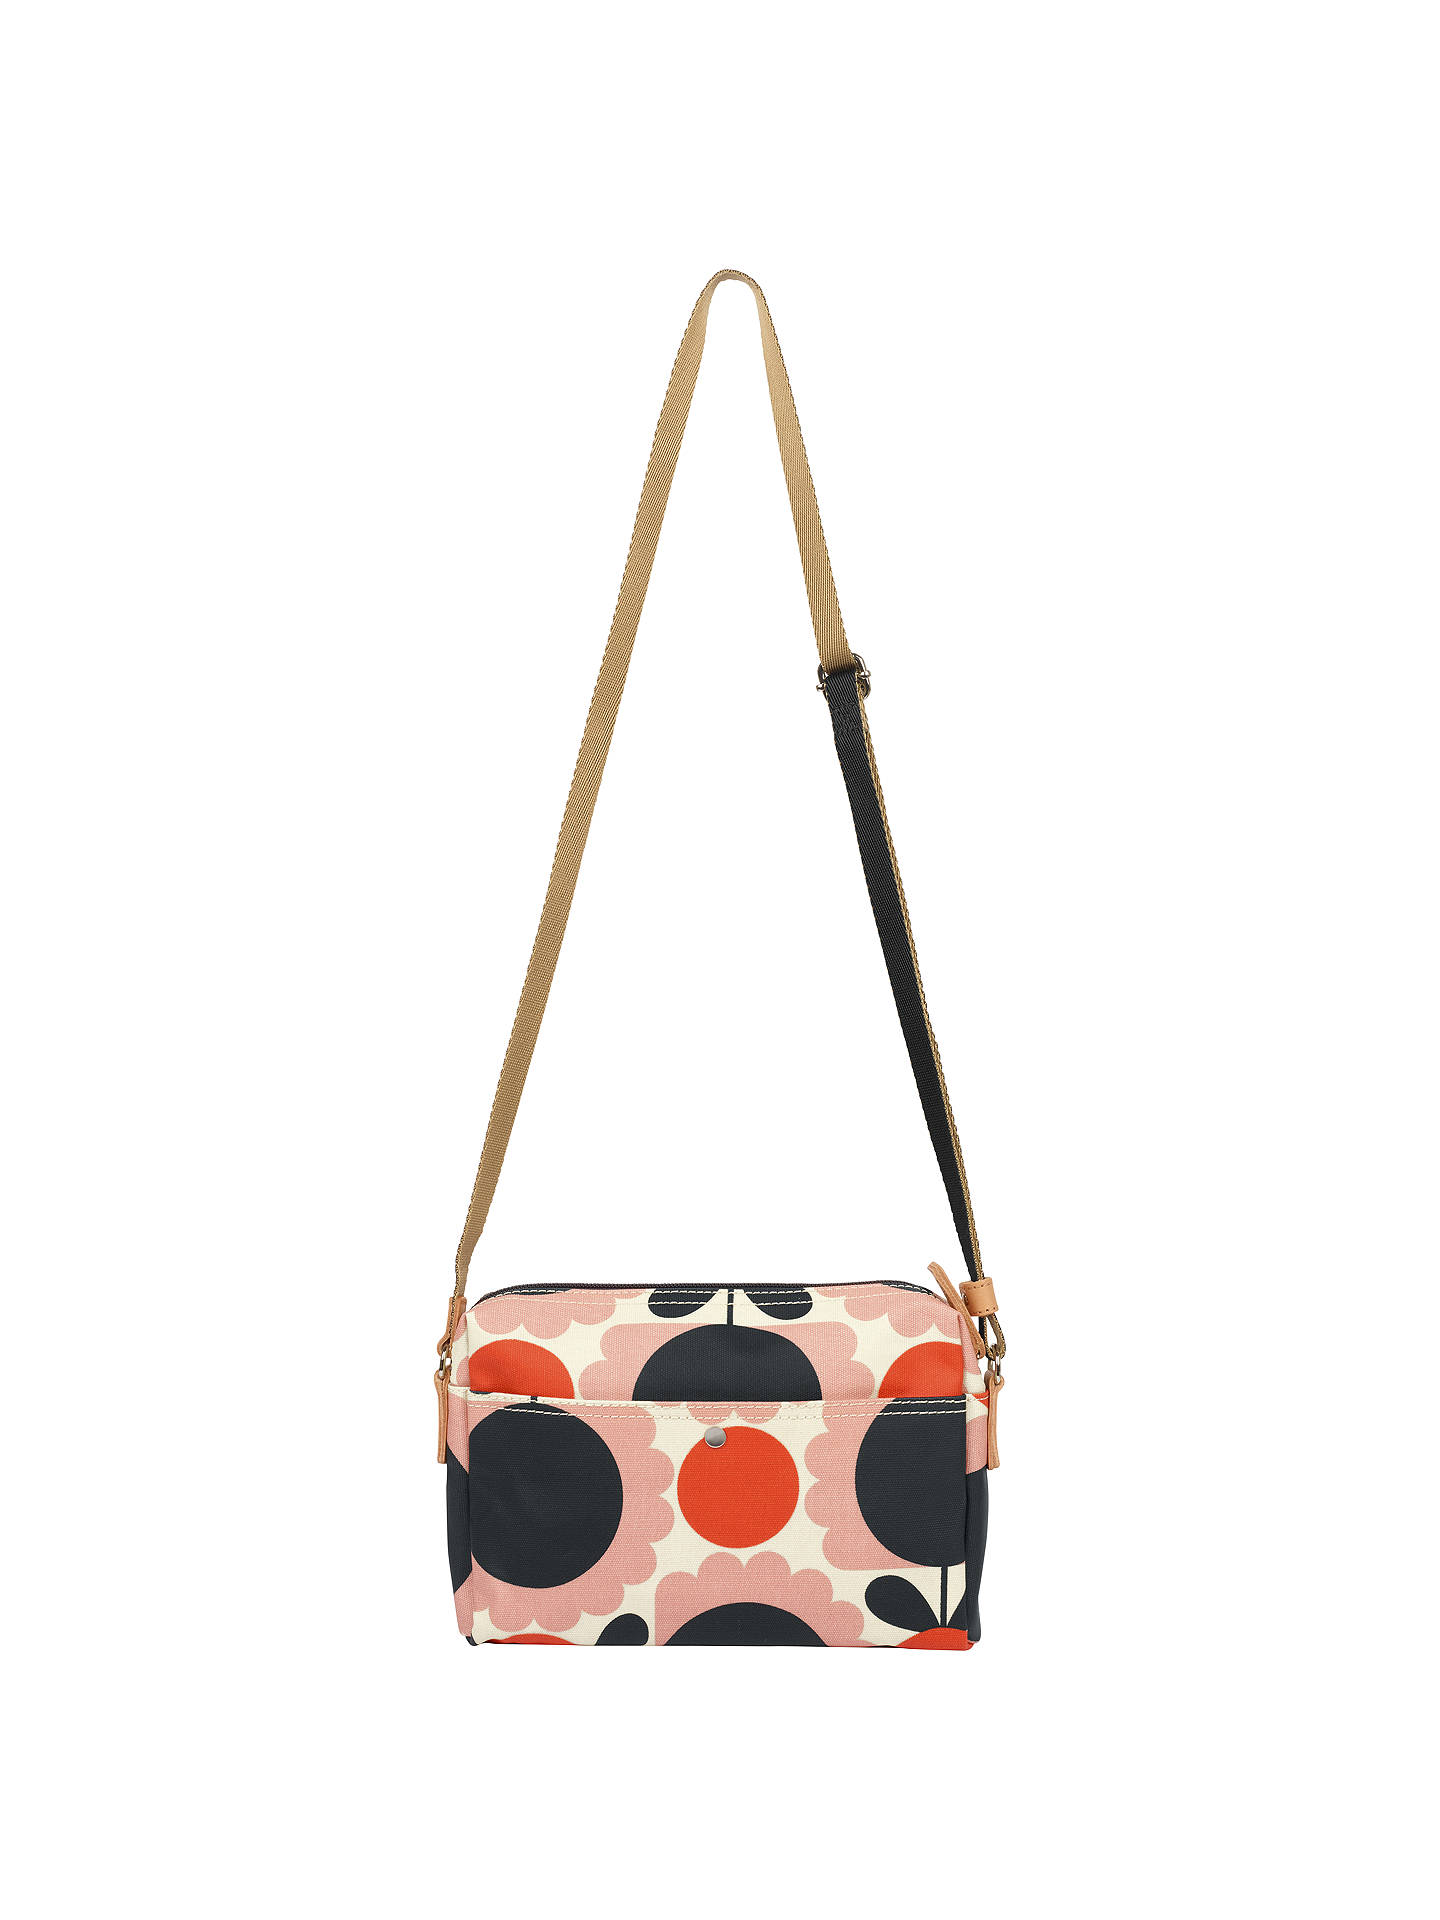 3df58c1c7d8 Buy Orla Kiely Scallop Flower Small Cross Body Bag, Pink/Multi Online at  johnlewis ...